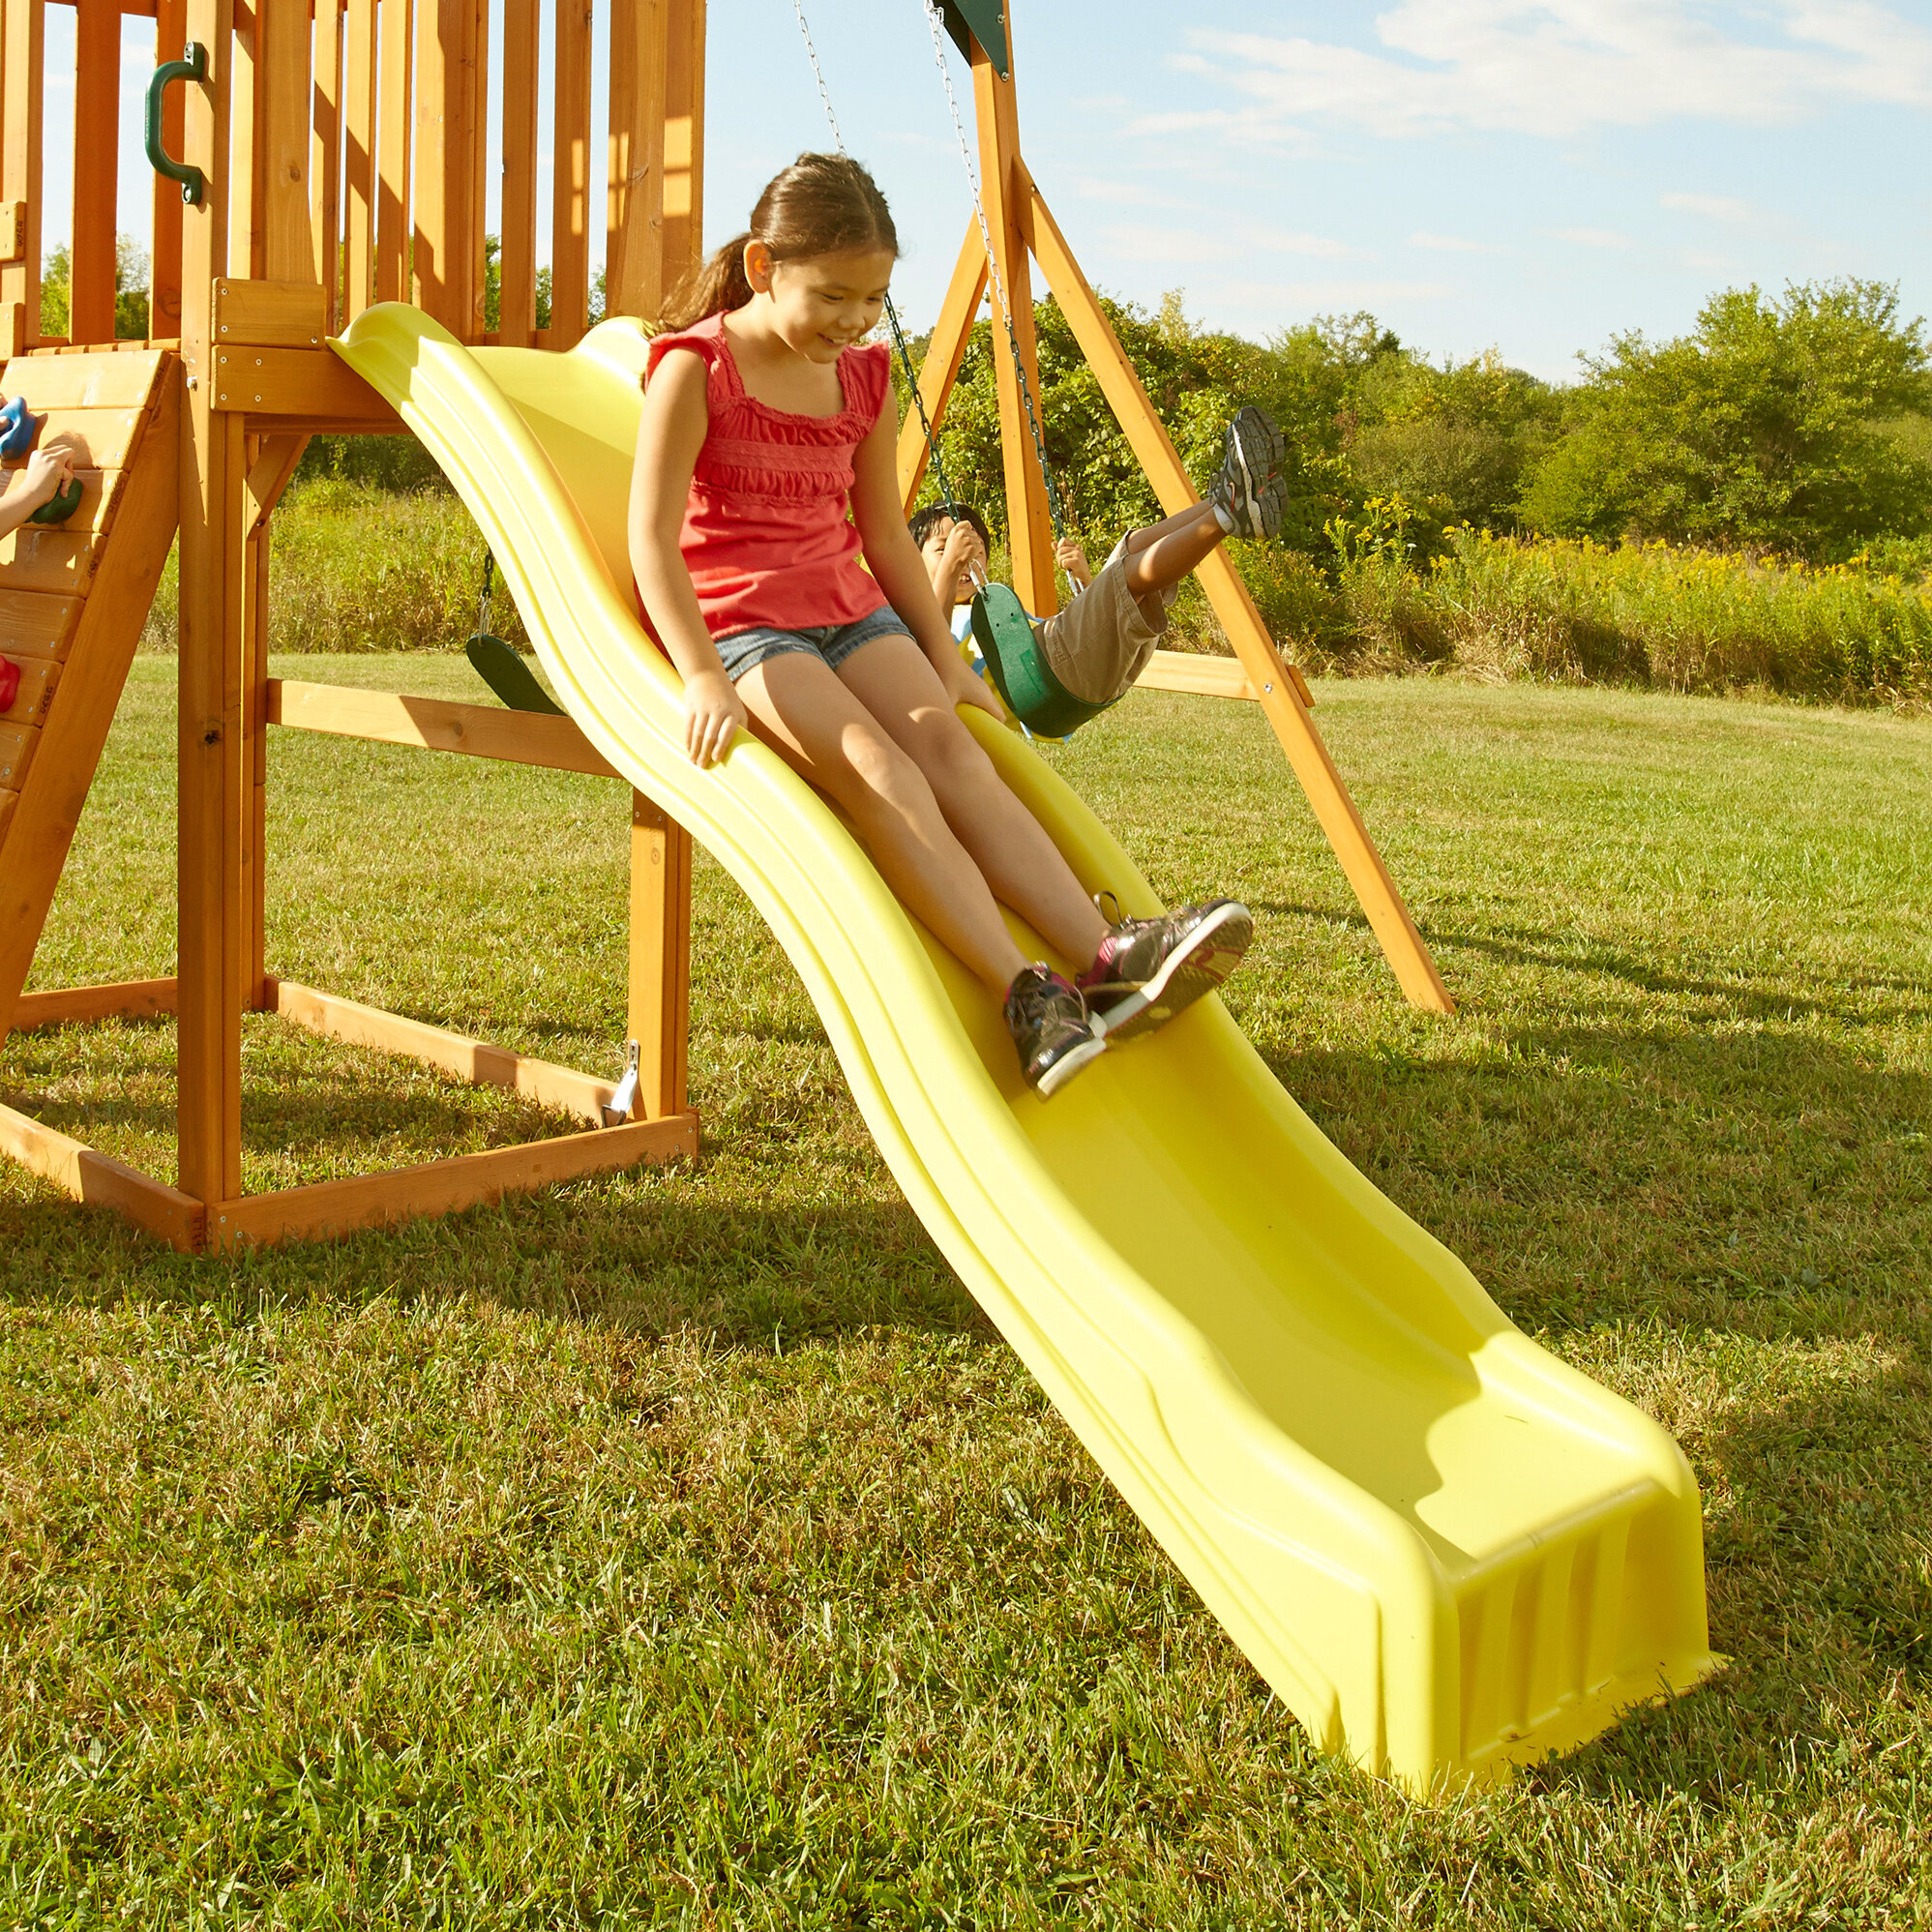 replacement slide playset kids wave playground child park swing trapeze backyard ebay. Black Bedroom Furniture Sets. Home Design Ideas